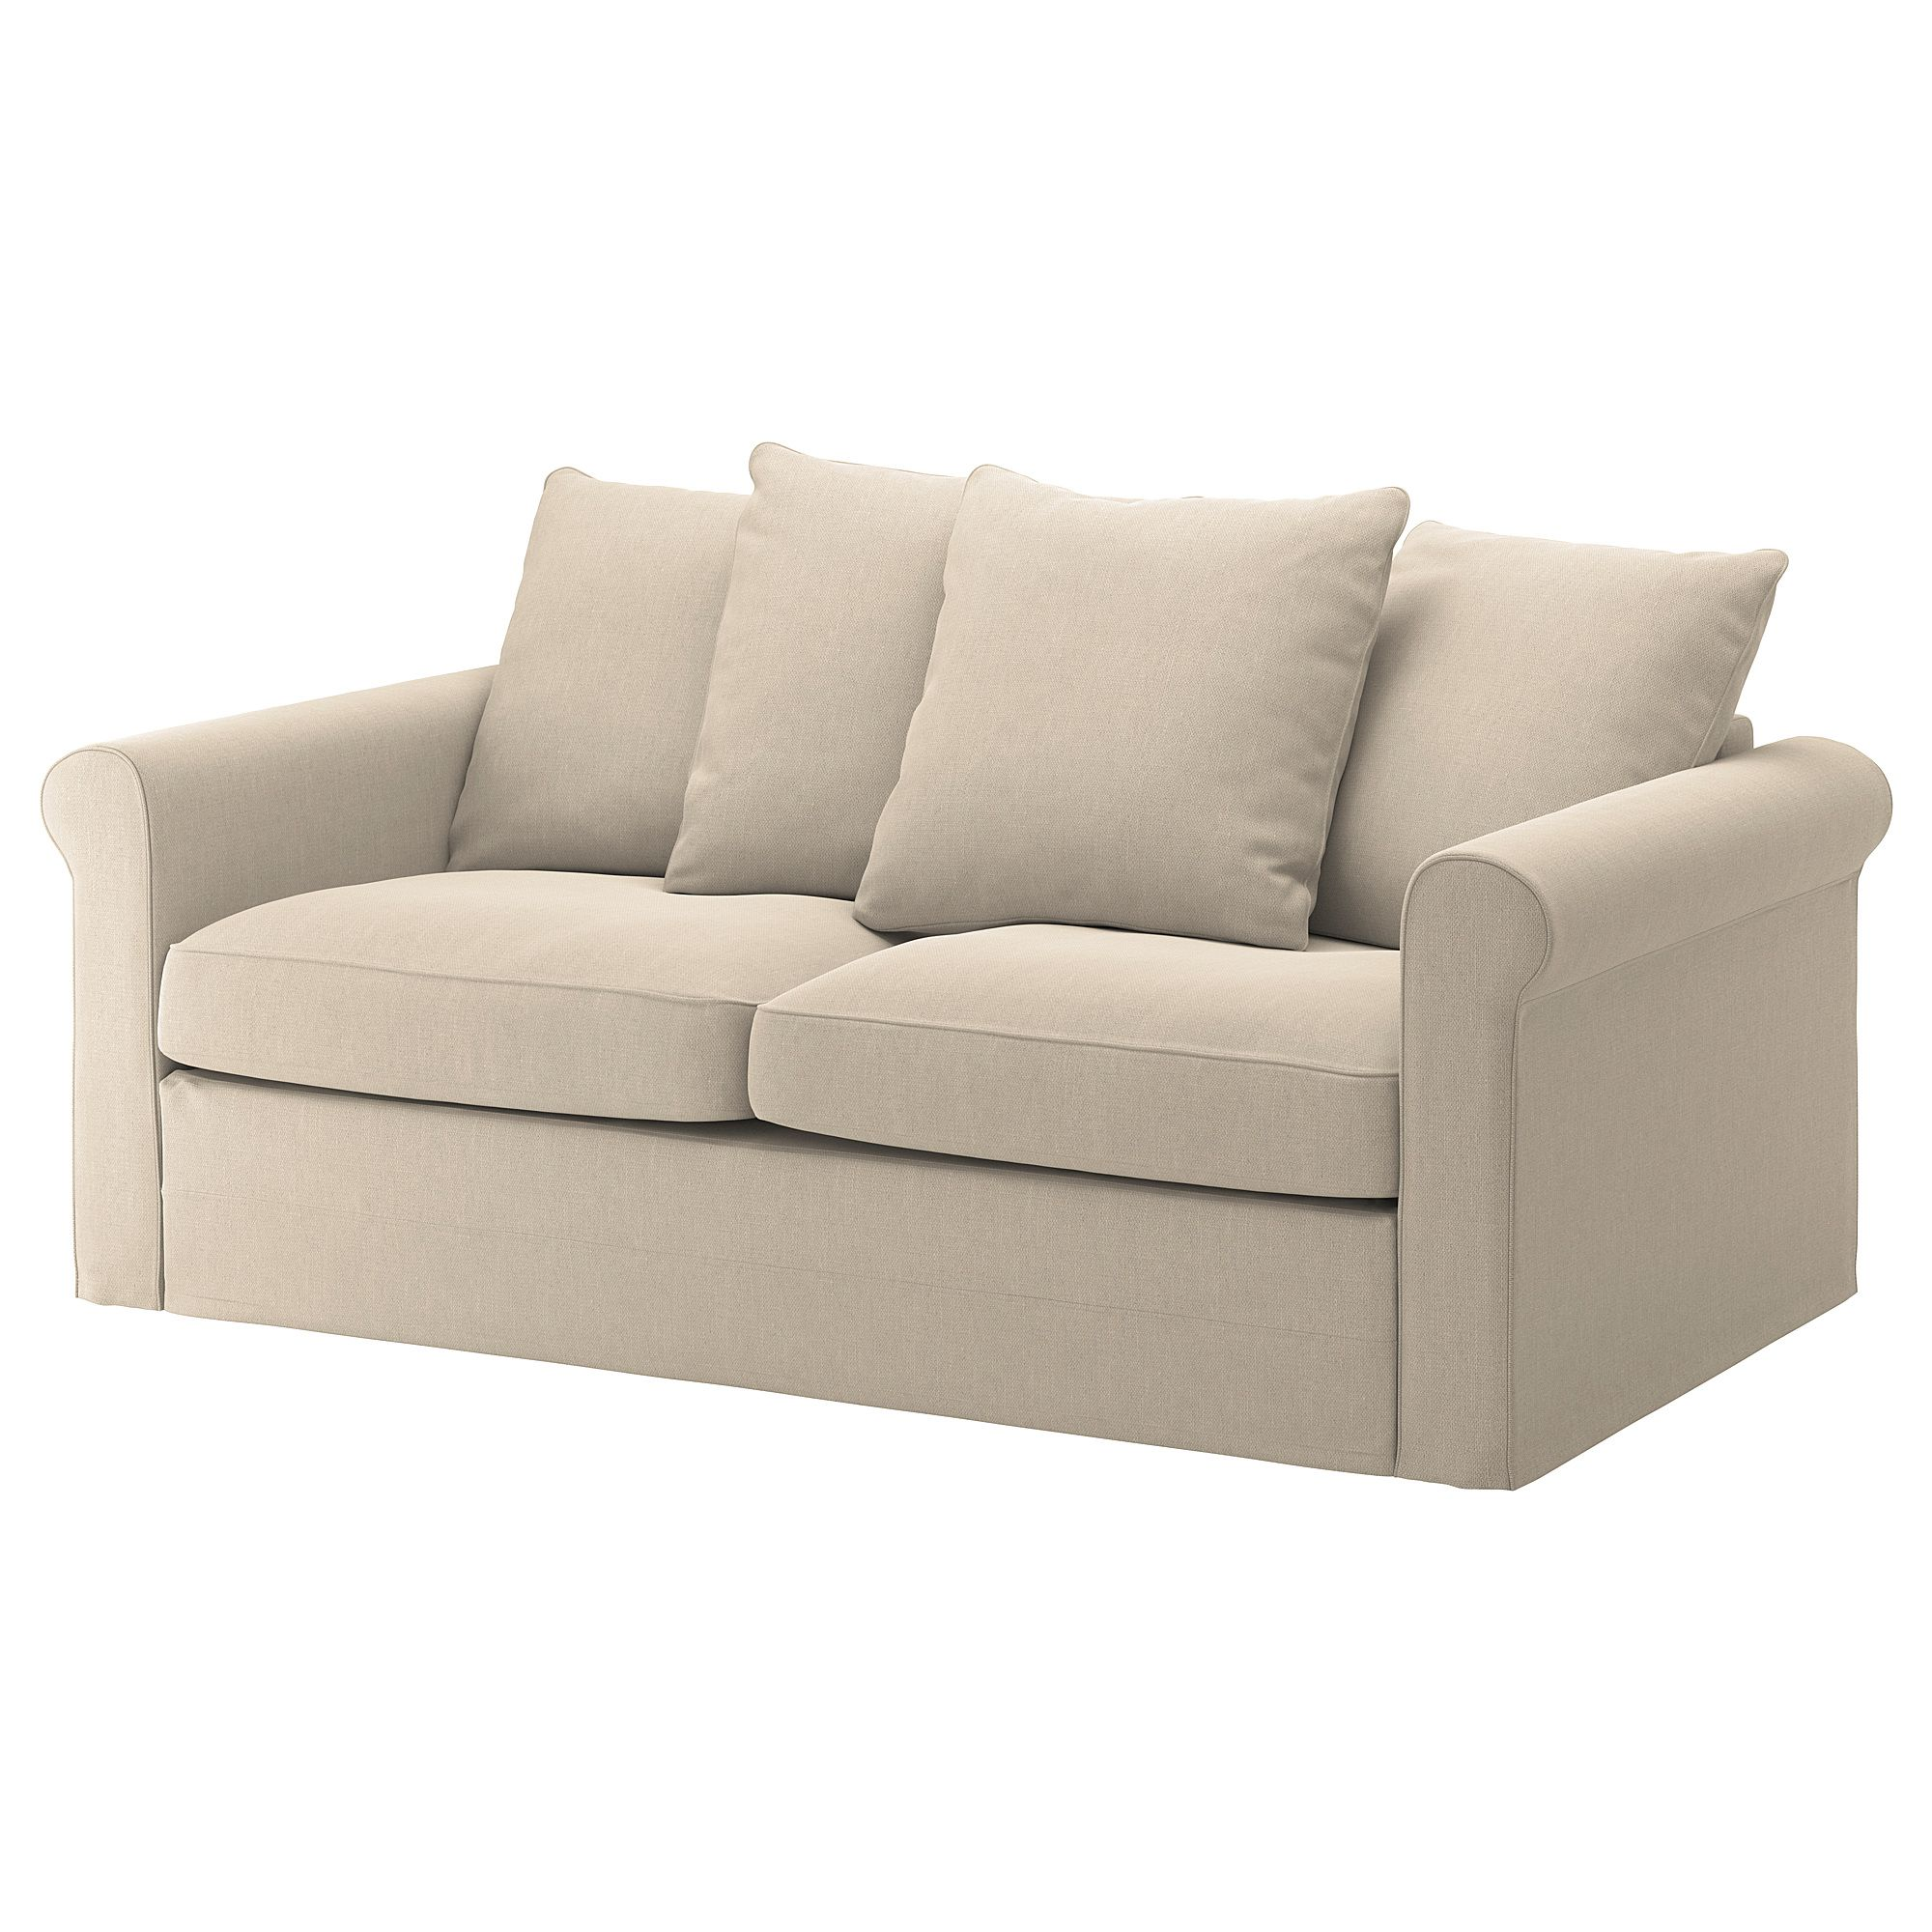 - IKEA - GRÖNLID Cover For Sleeper Sofa Sporda Natural (With Images